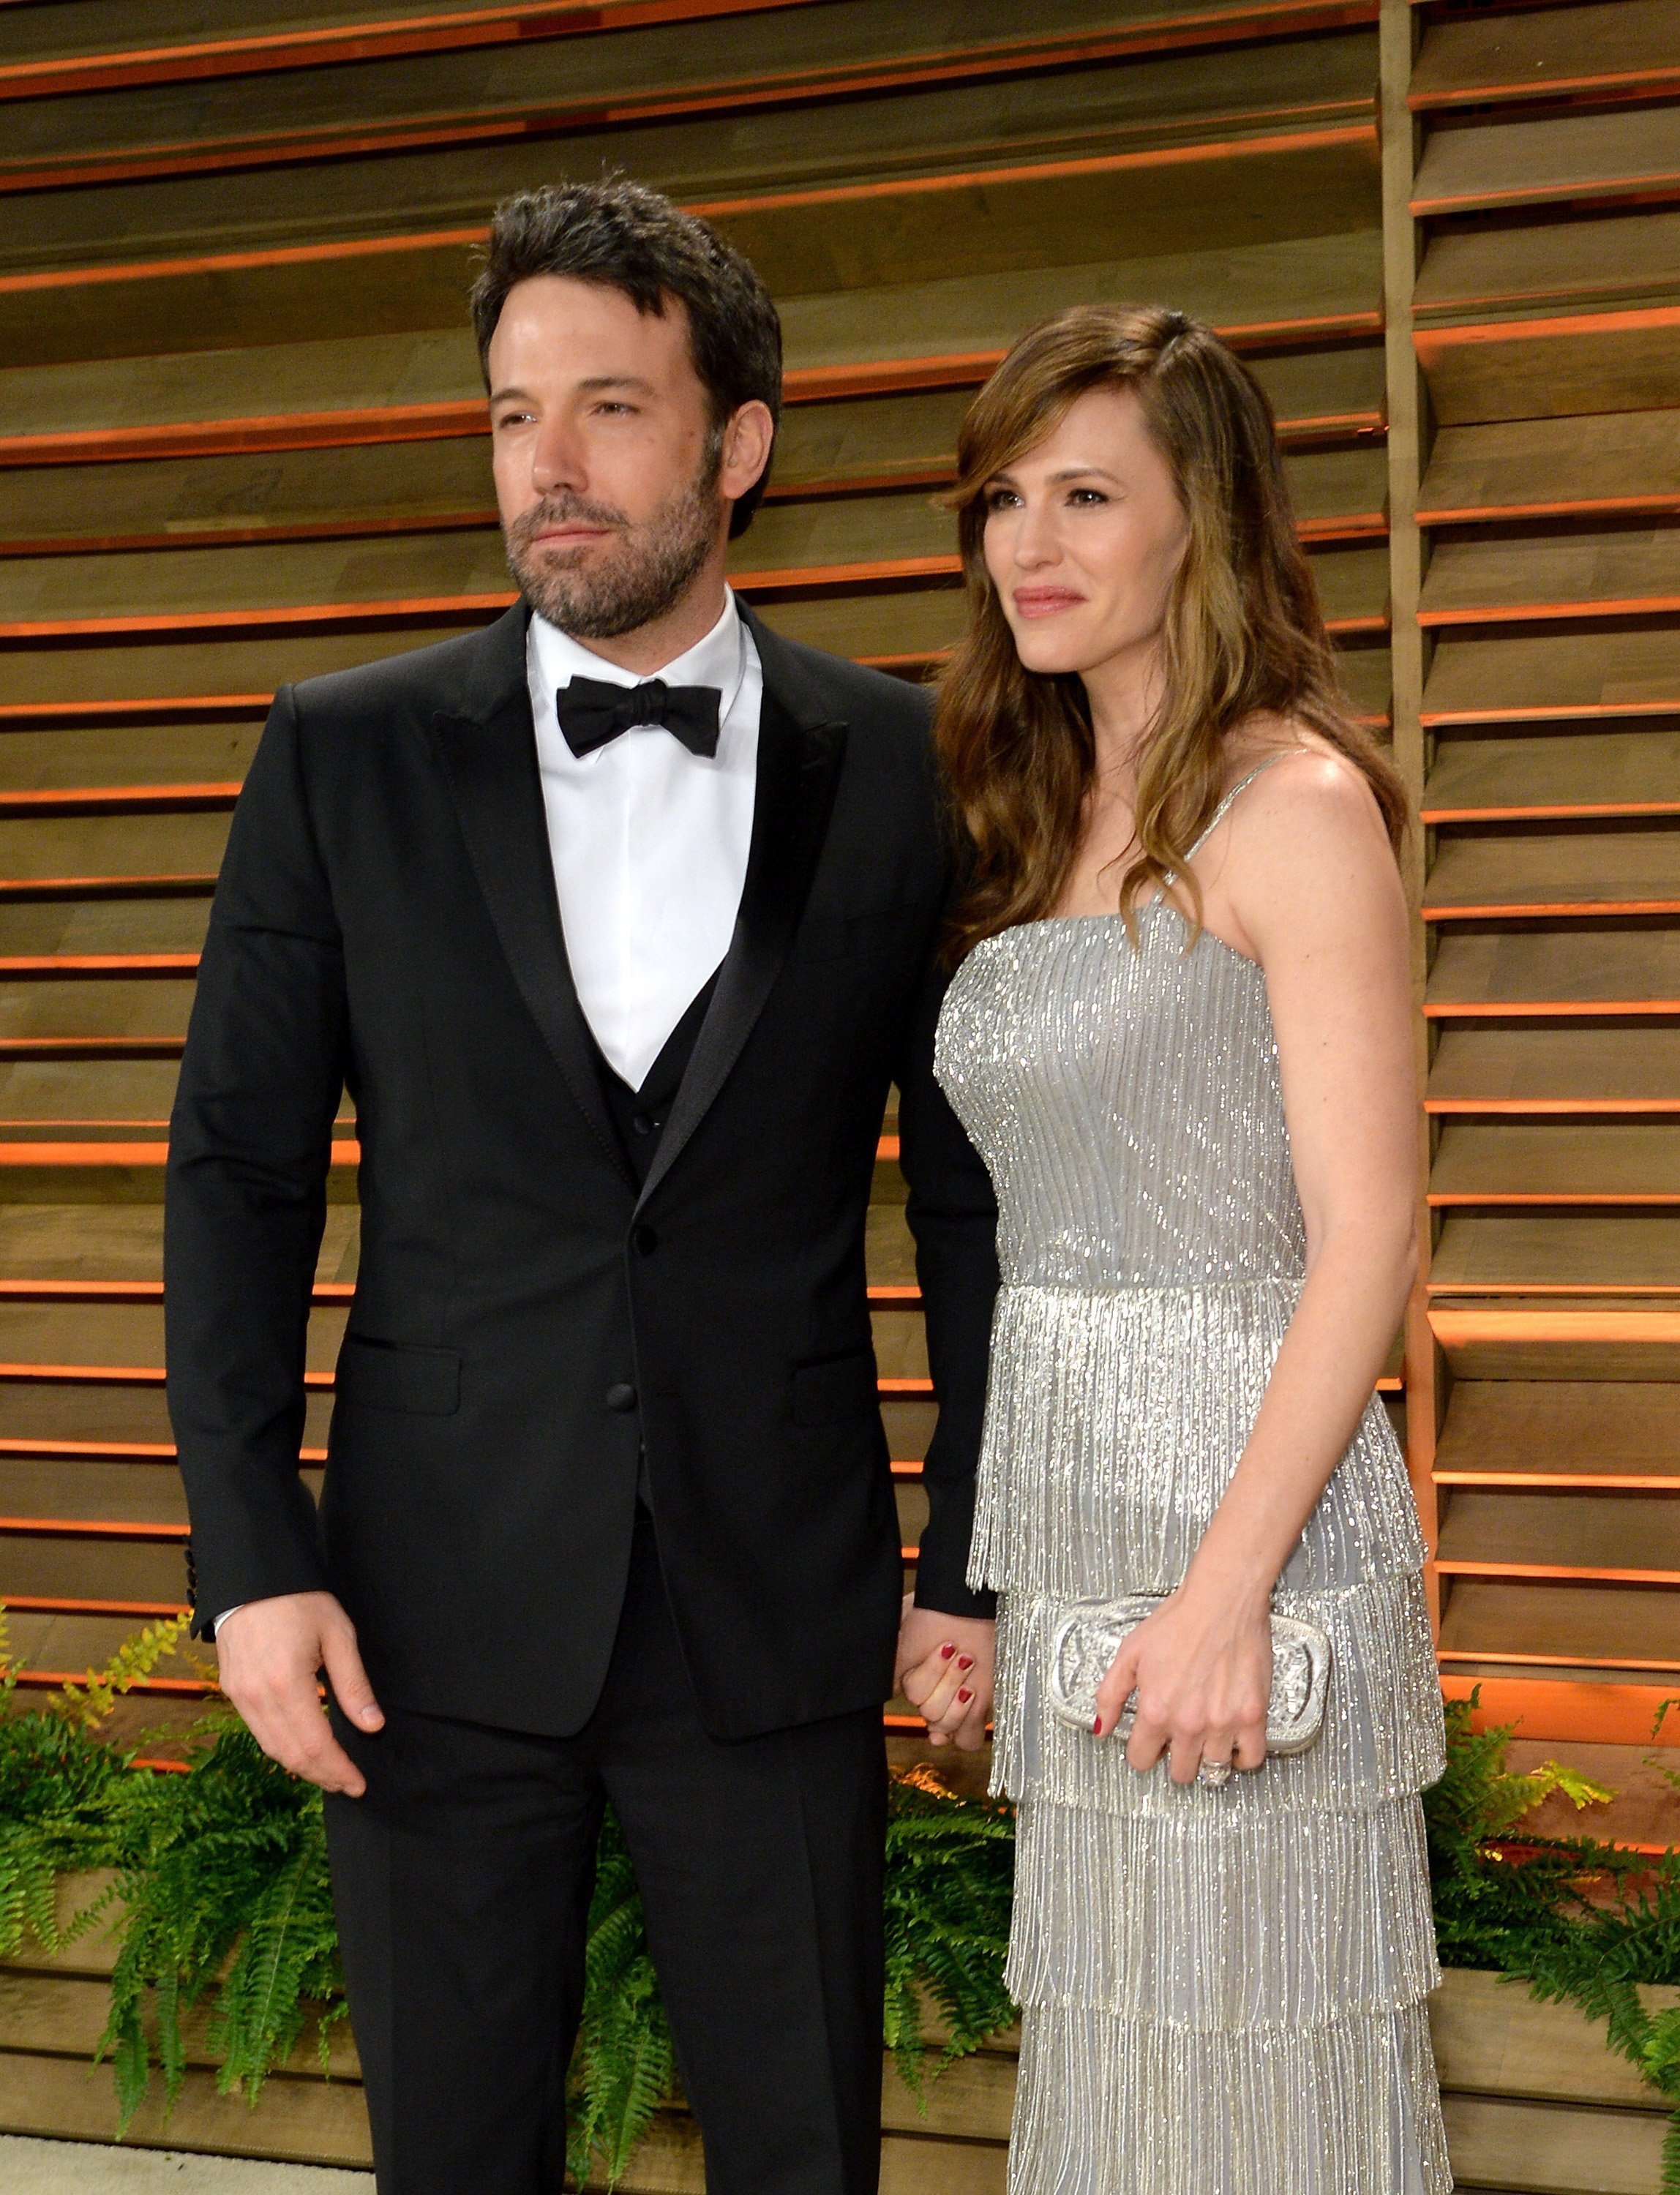 Ben Affleck and Jennifer Garner attend the Vanity Fair Oscar Party in West Hollywood, California on March 2, 2014 | Photo: Getty Images